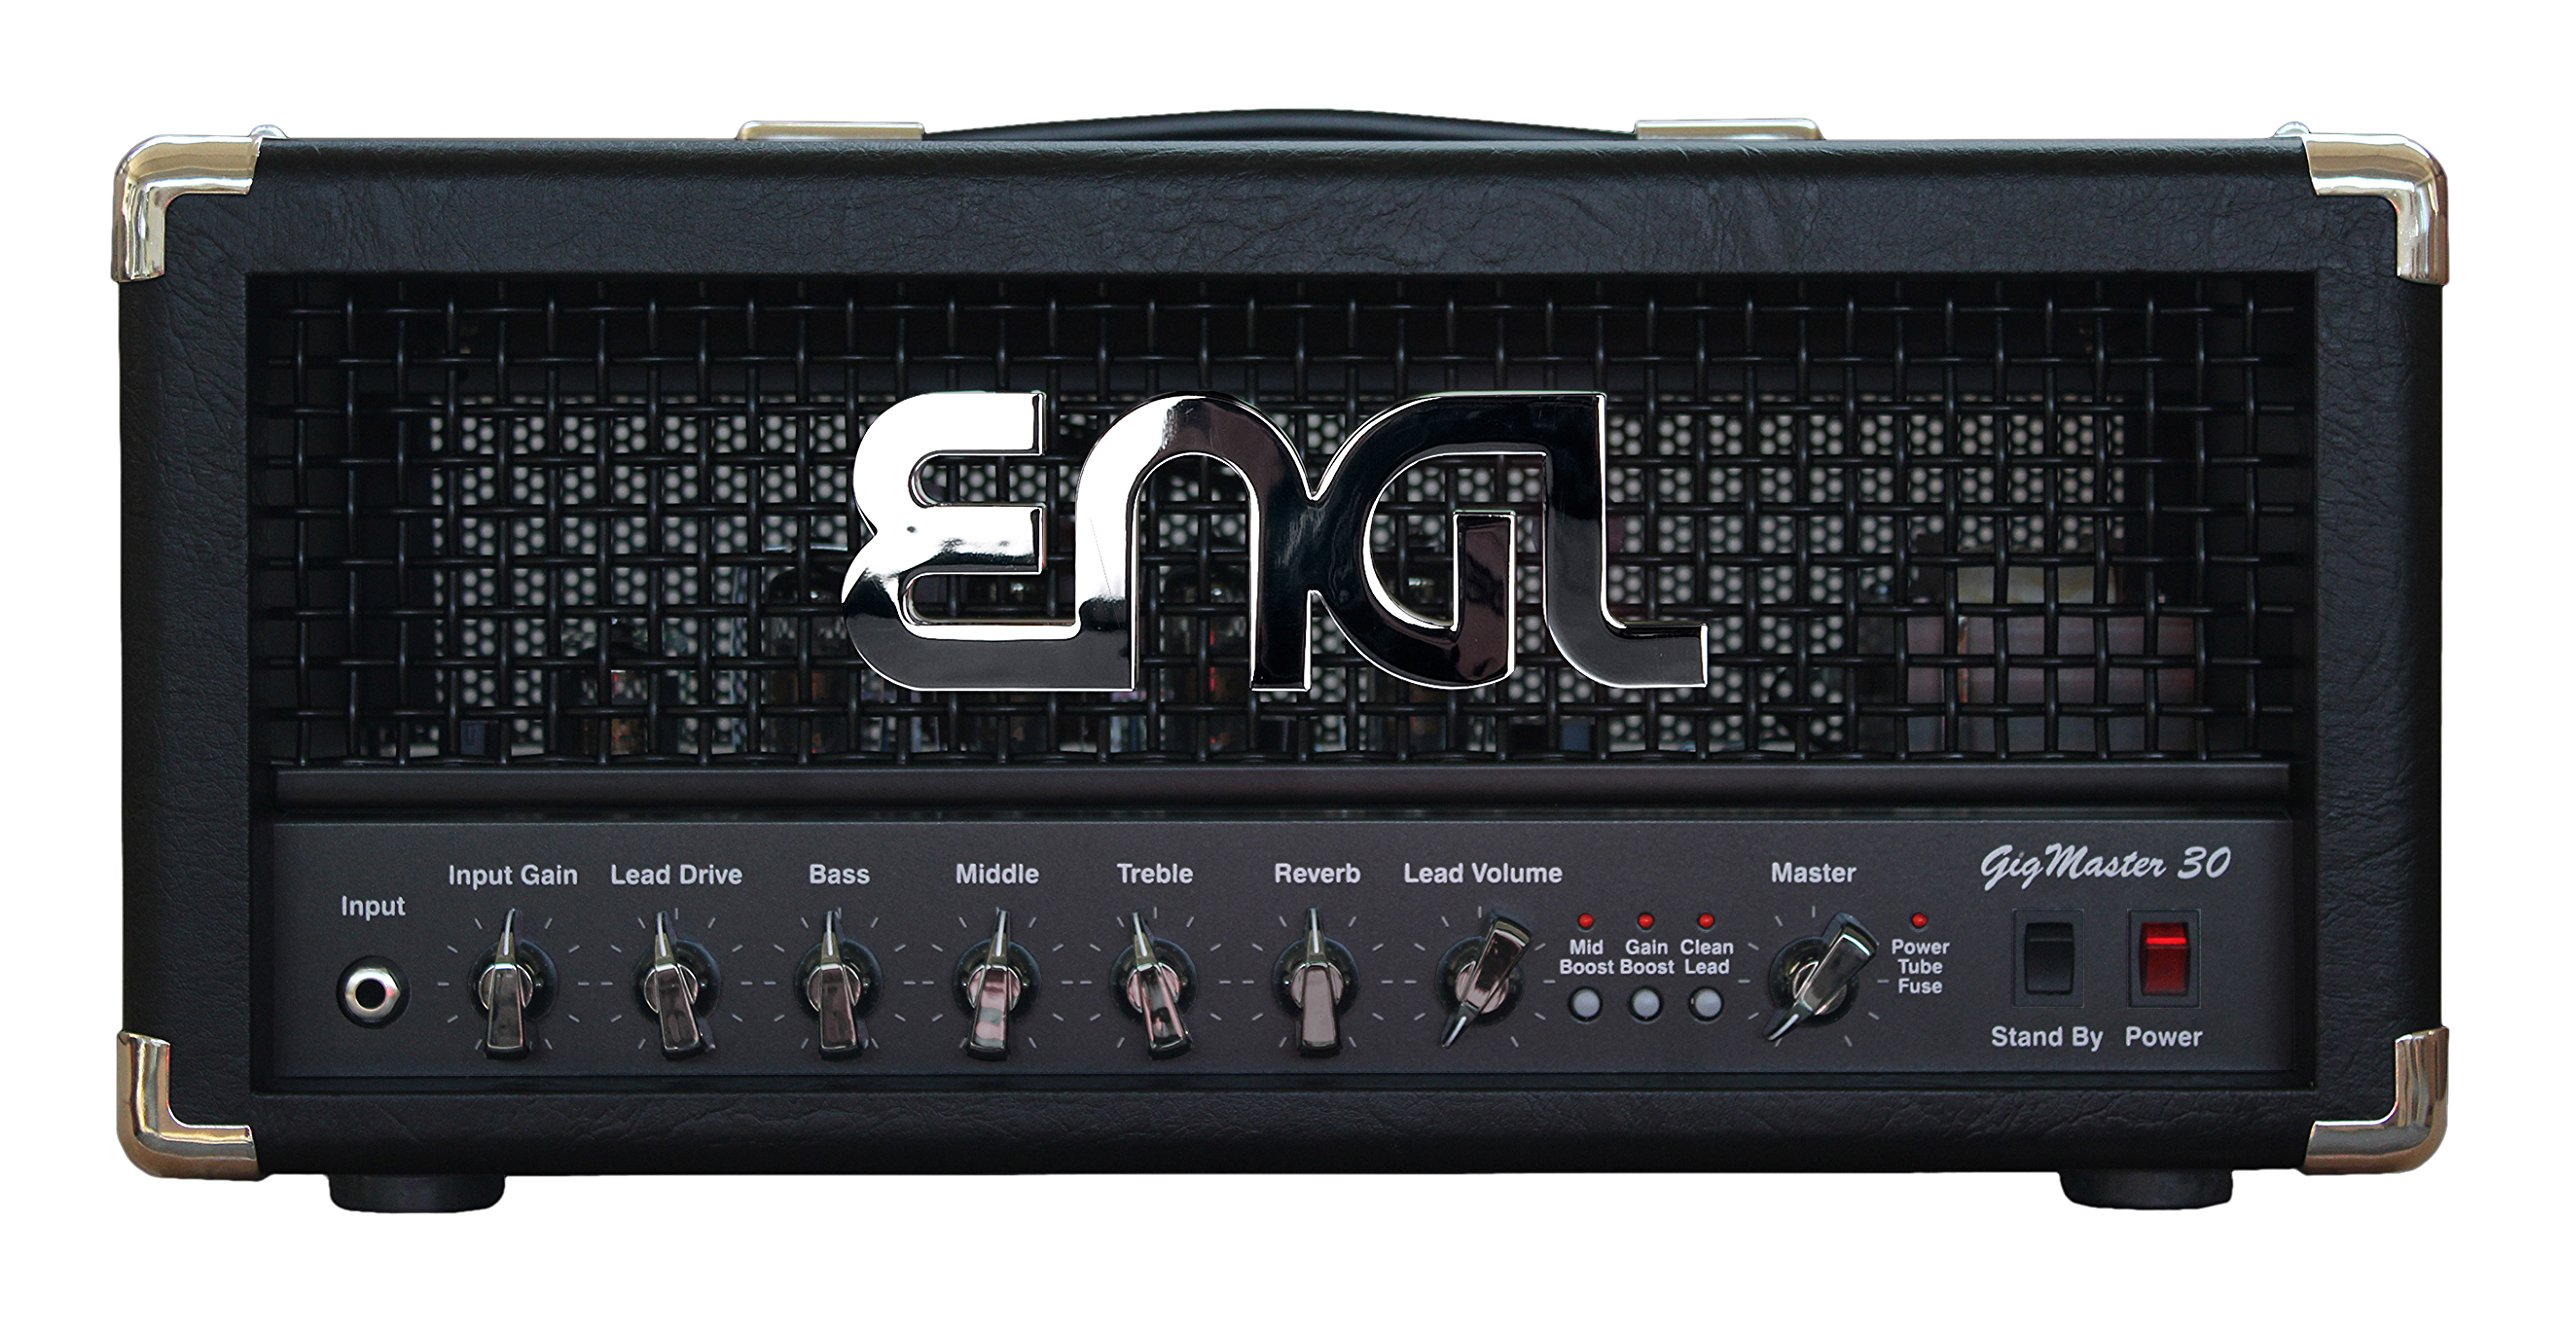 ENGL Amplification E 305 Gigmaster 30 Head